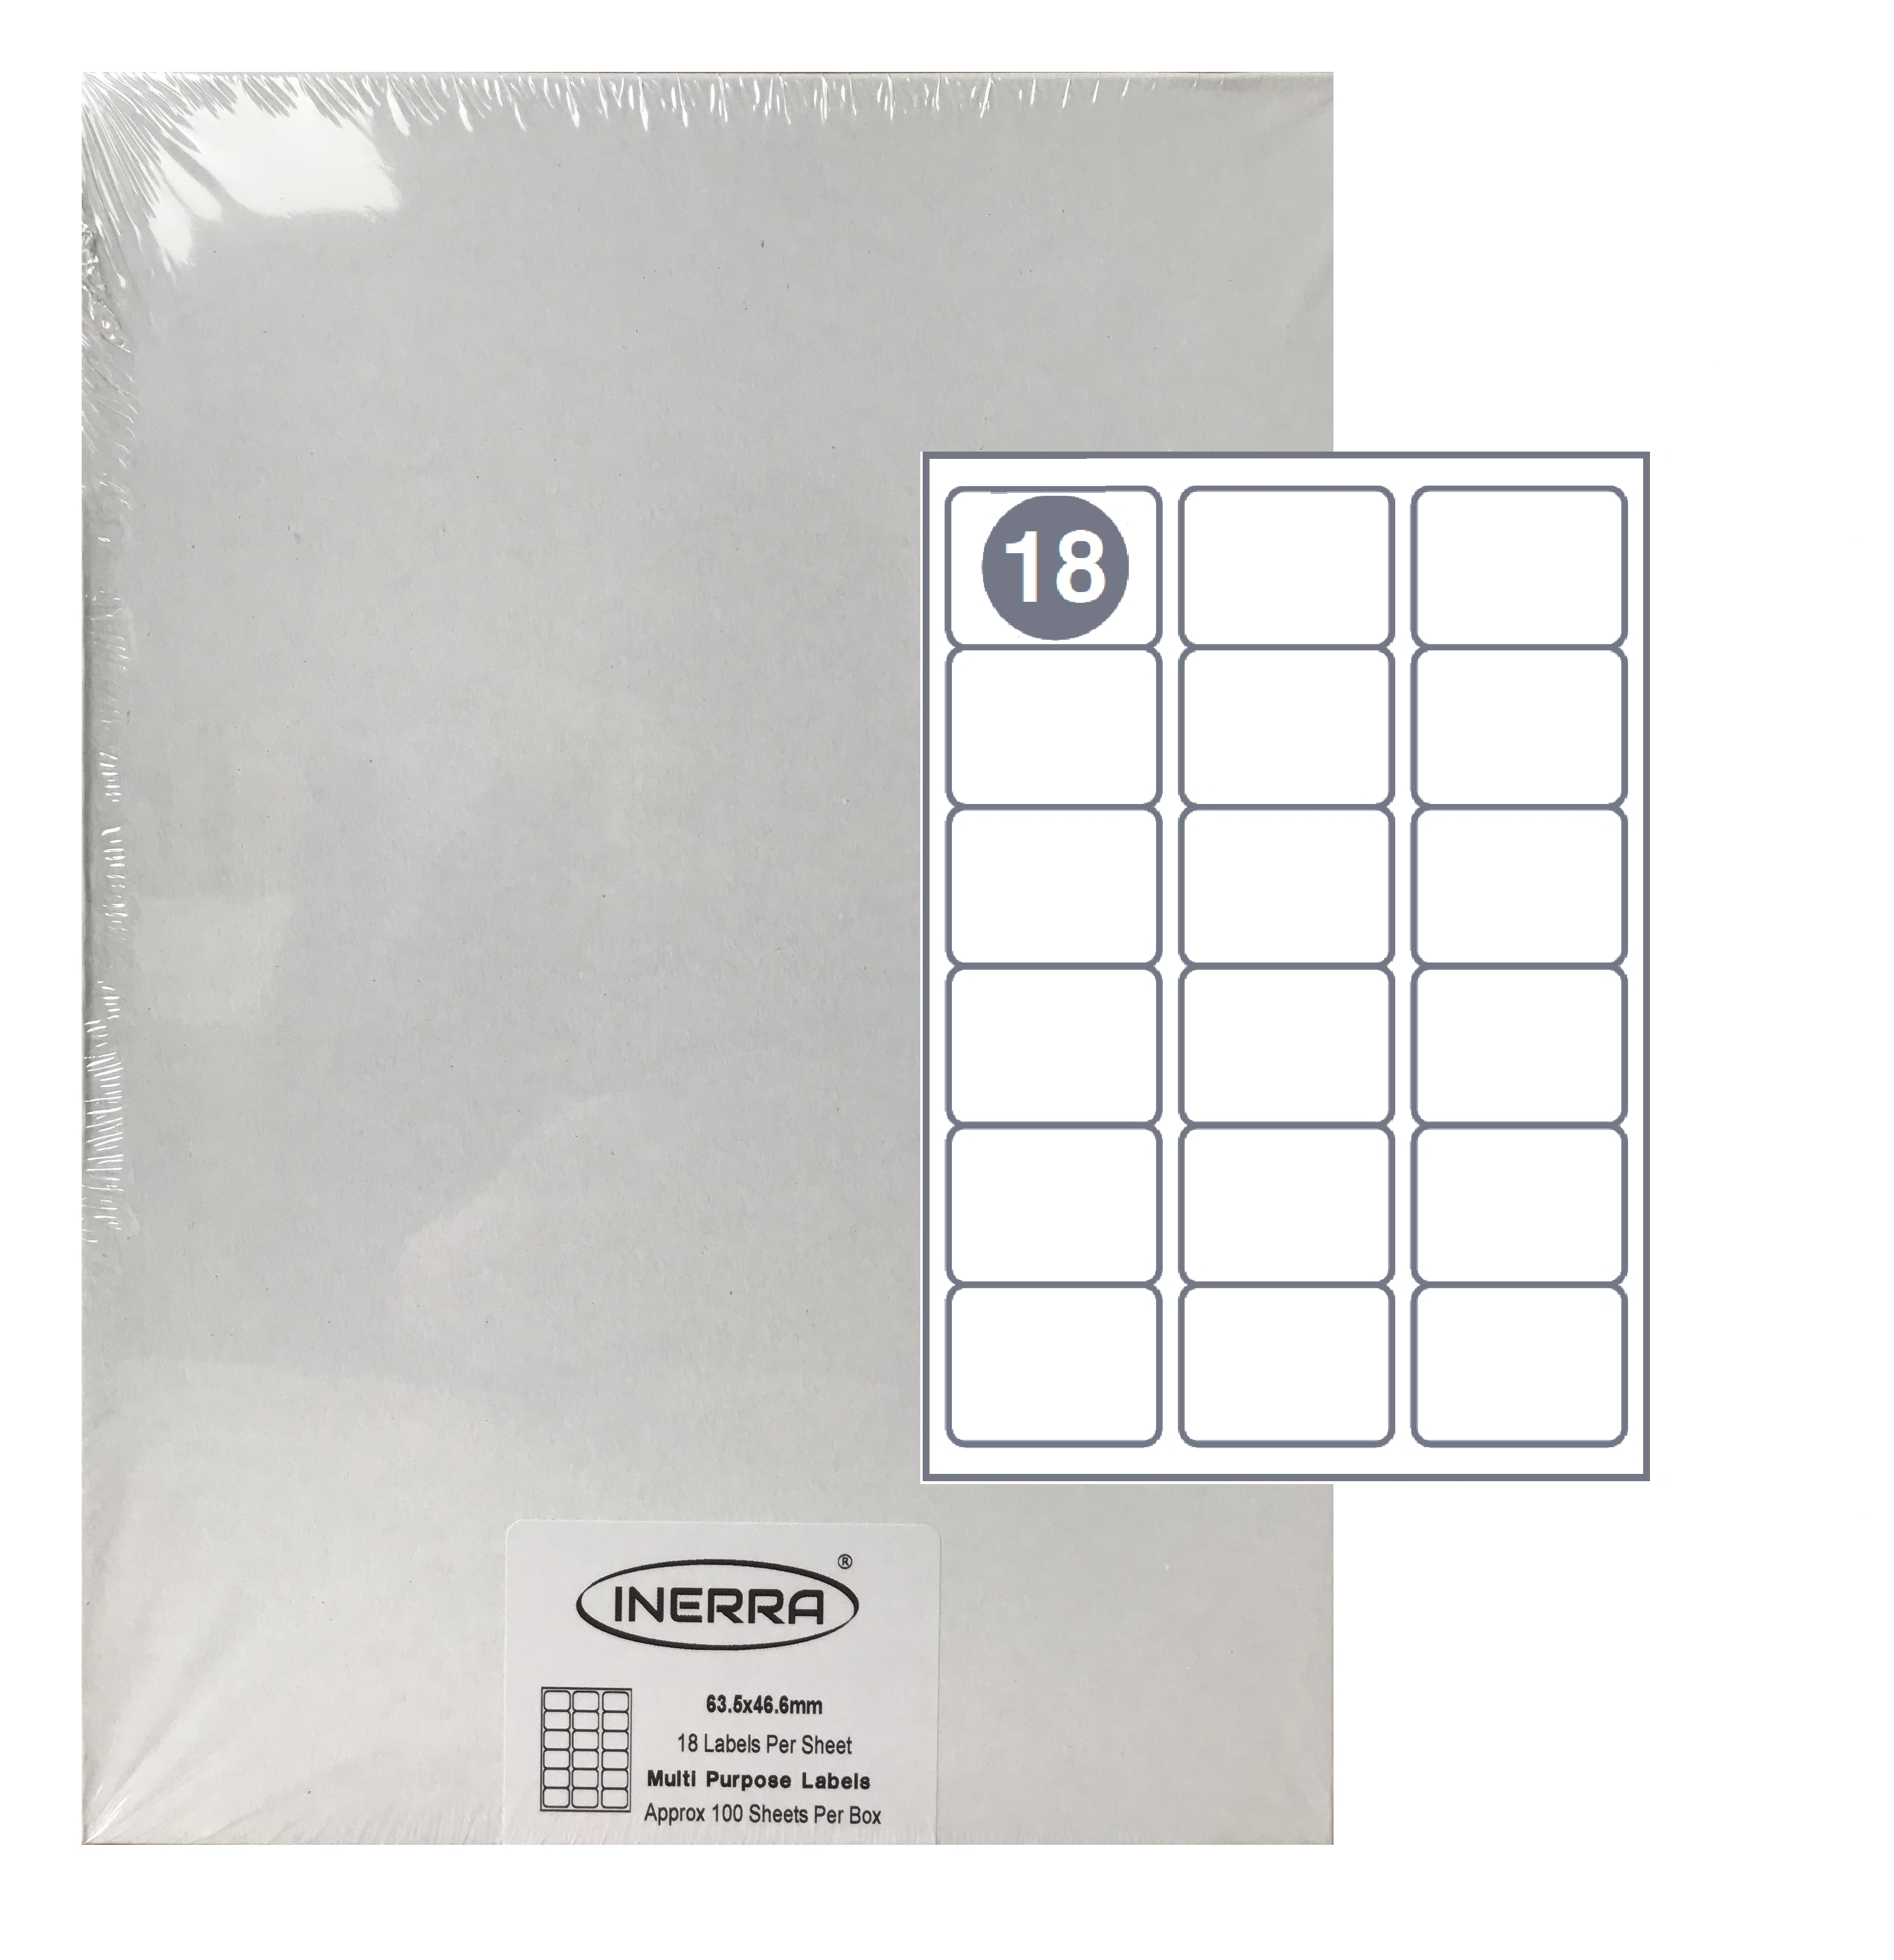 Free Template for INERRA Blank Labels - 21 Per Sheet Intended For Word Label Template 12 Per Sheet